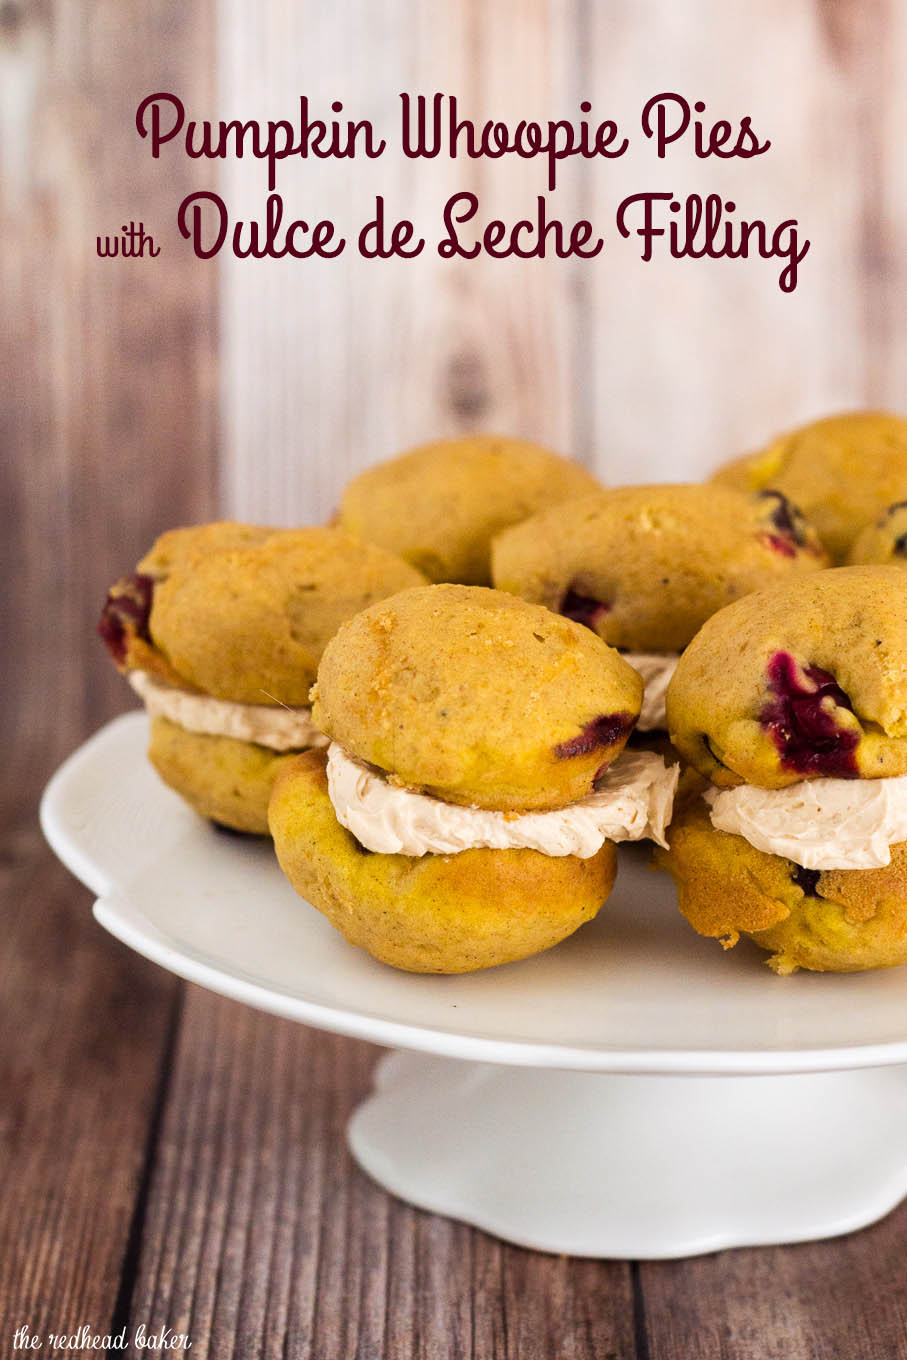 Pumpking Whoopie Pies sandwich two soft, light pumpkin cookies studded with fresh cranberries with creamy dulce de leche marshmallow filling.